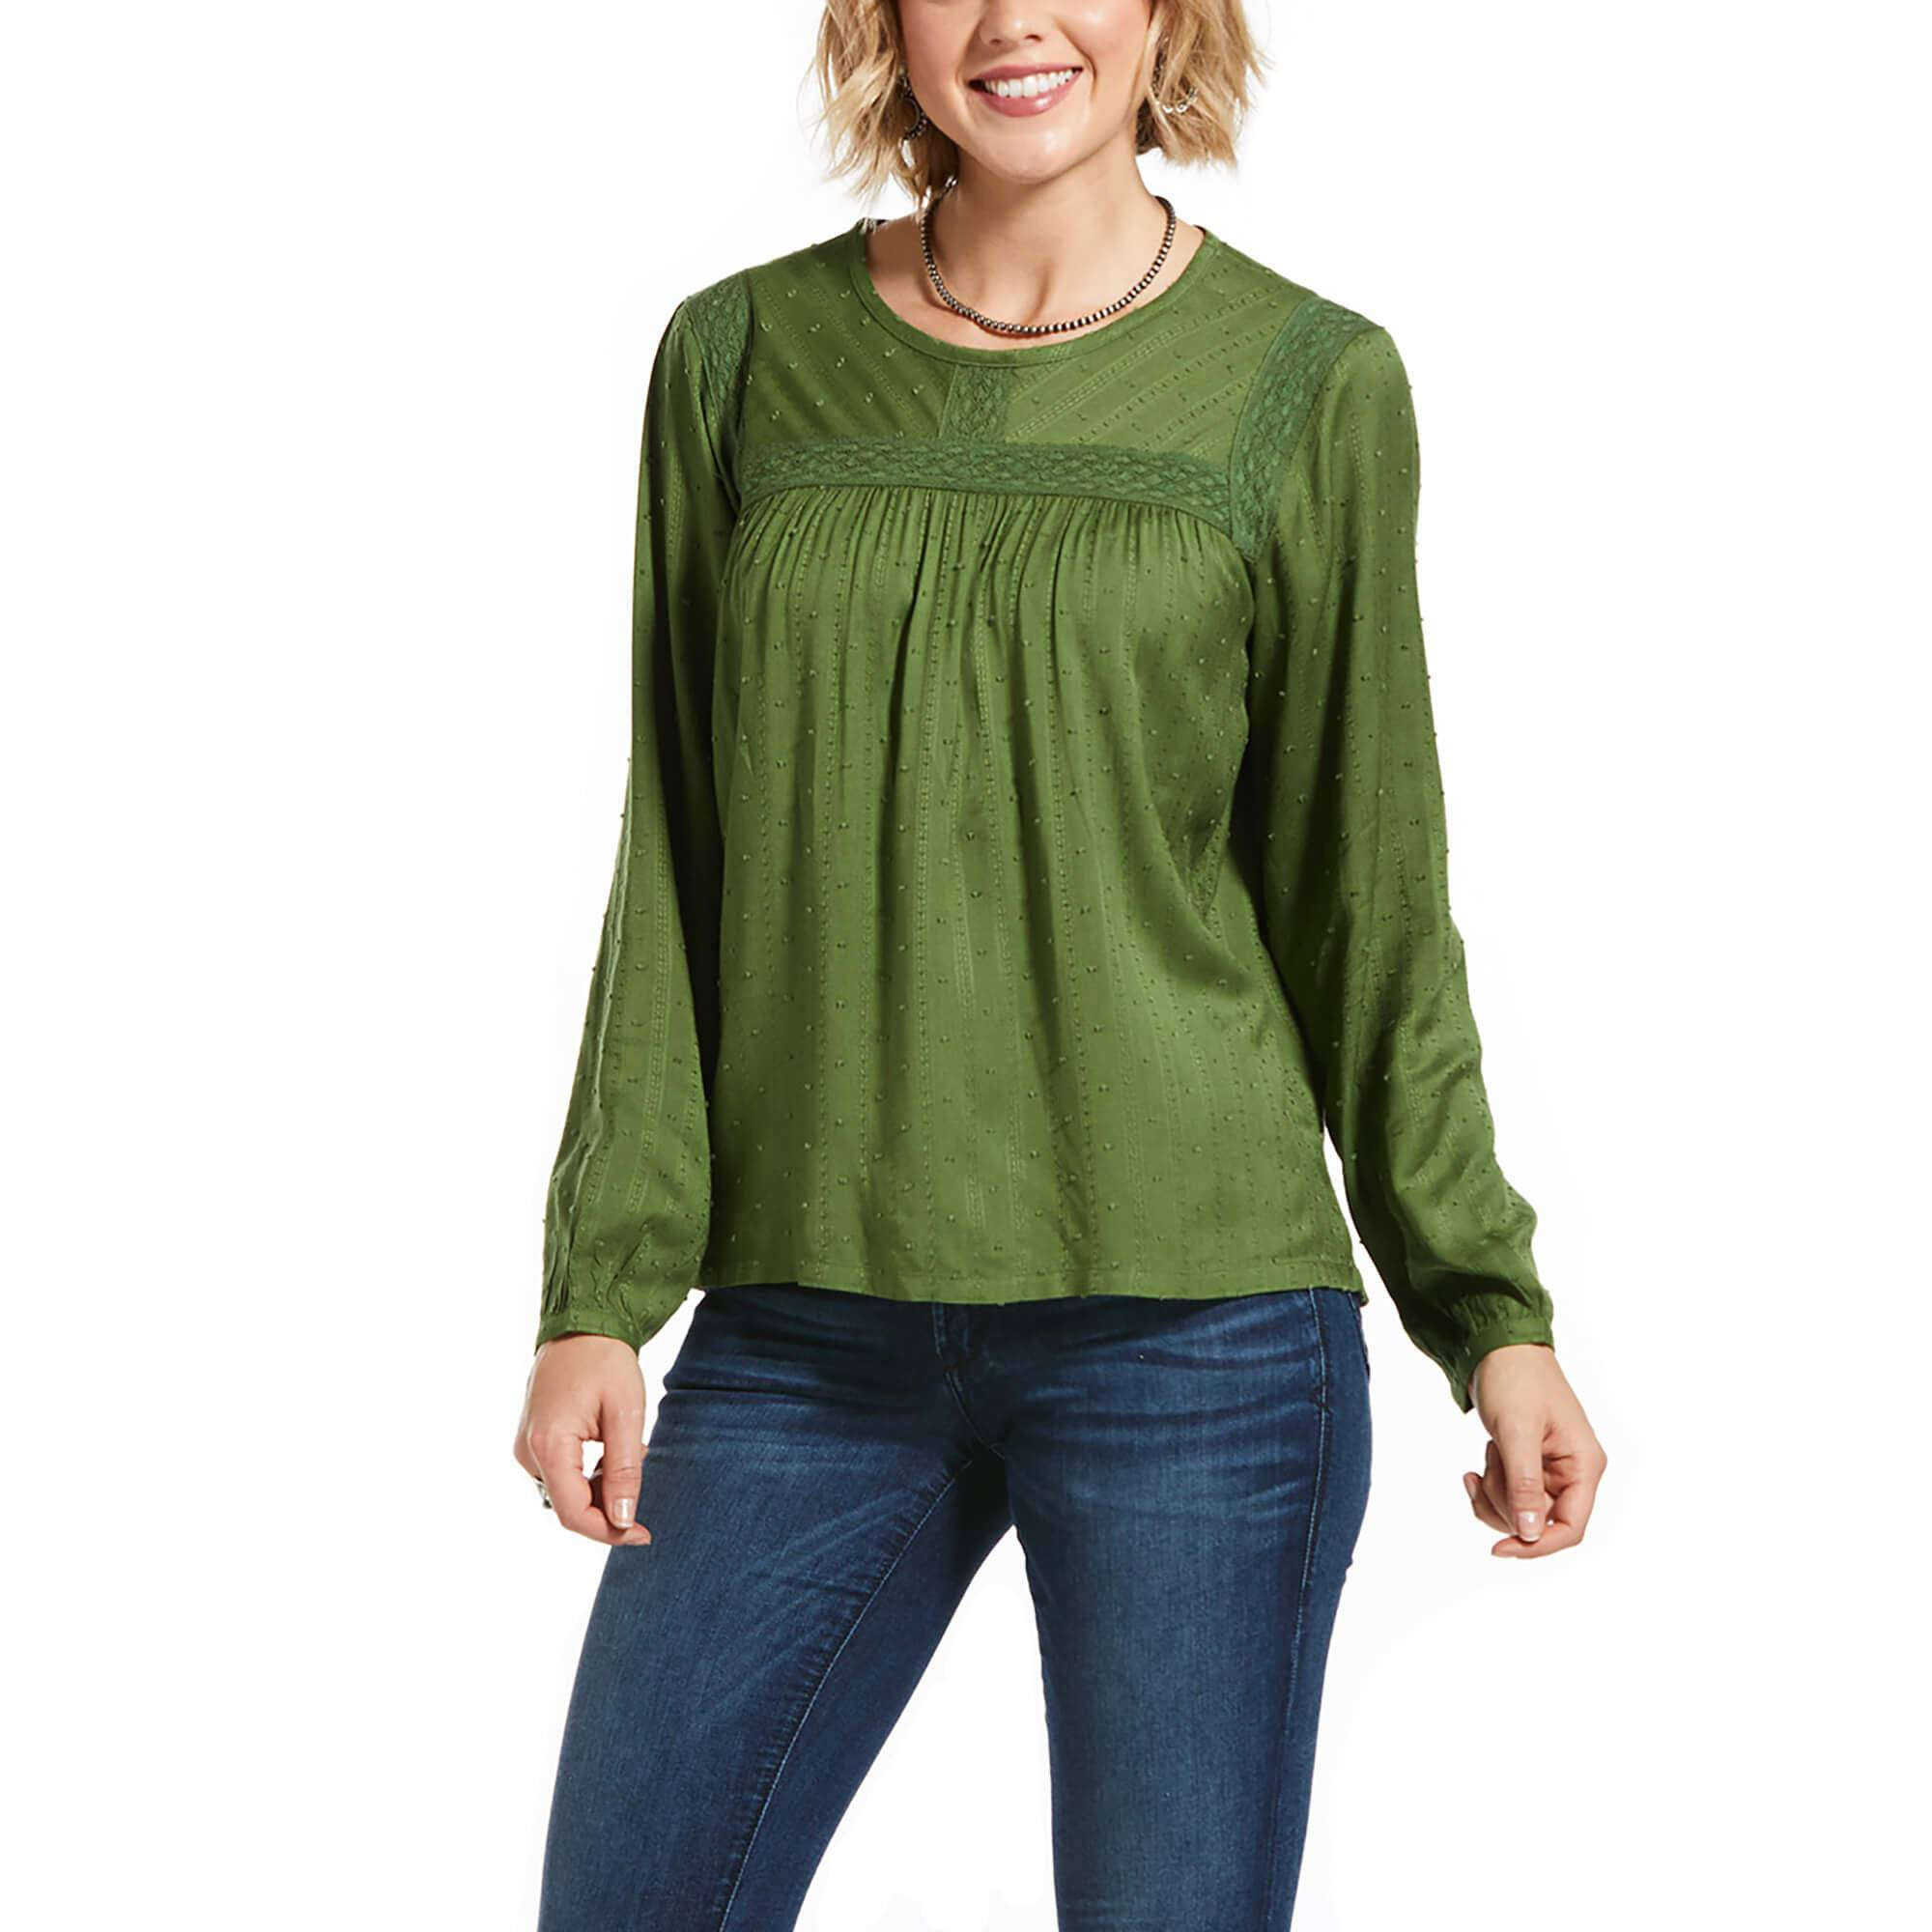 Ariat Women's Long Sleeve Meadow Top in Garden Green, 2X-Large by Ariat